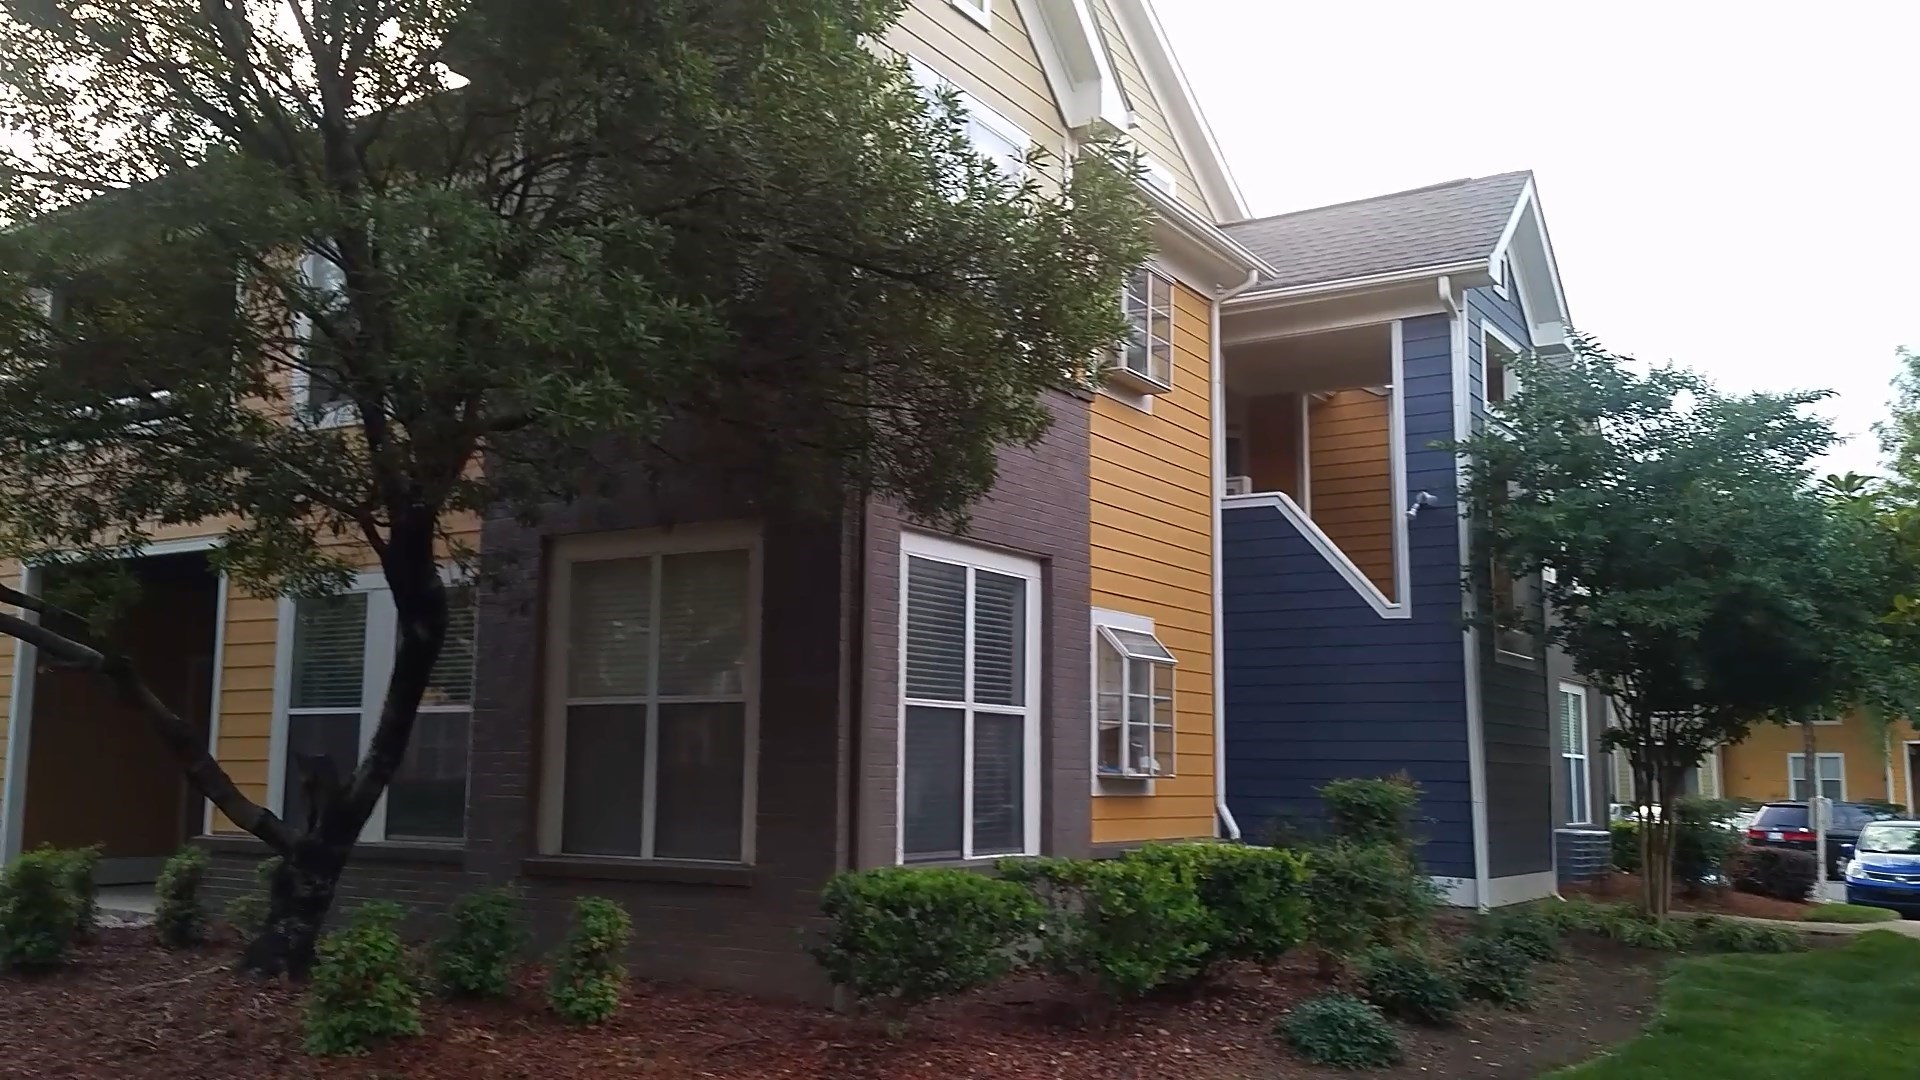 1 bedroom for sublease the arboretum apartments 1 bhk - 1 bedroom apartment in charlotte nc ...